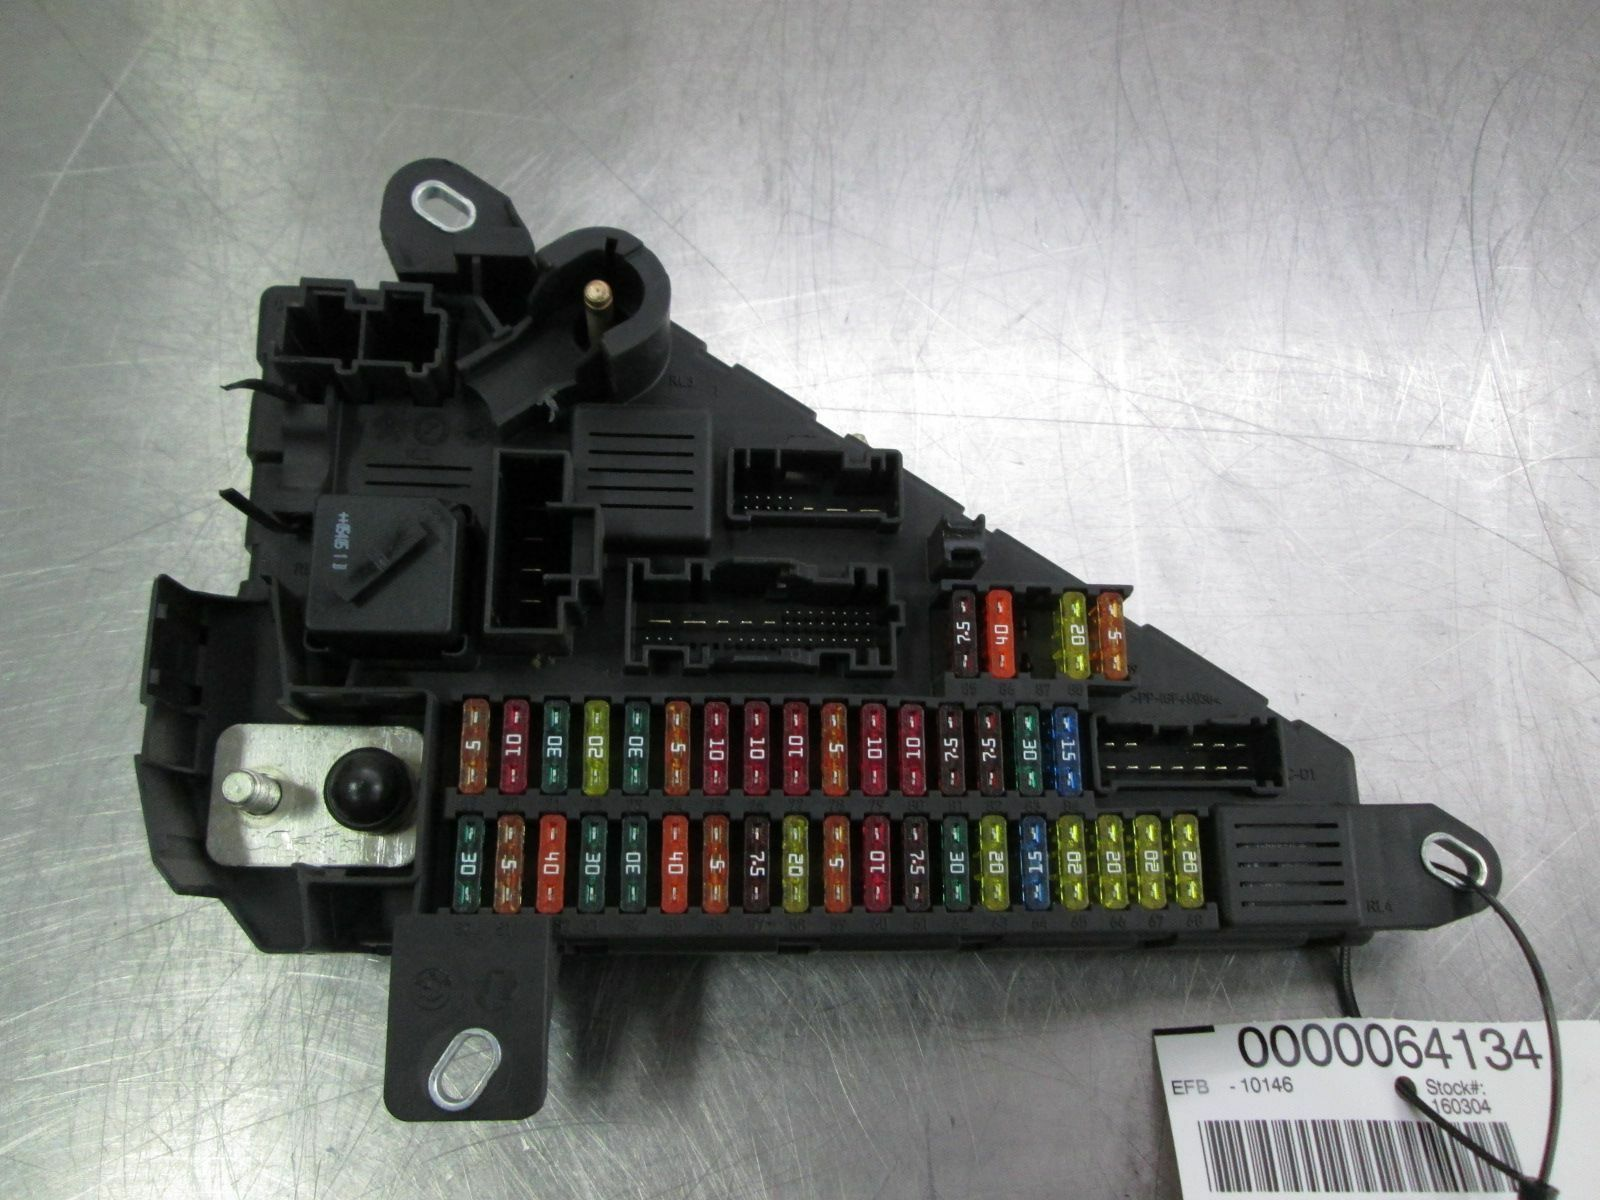 M5 Fuse Box Doing Wiring Diagram The New Way Location On 2013 Ford Explorer Rear Power Distribution 61149138830 Bmw E60 2006 09 Rh Pacificmotors Com F10